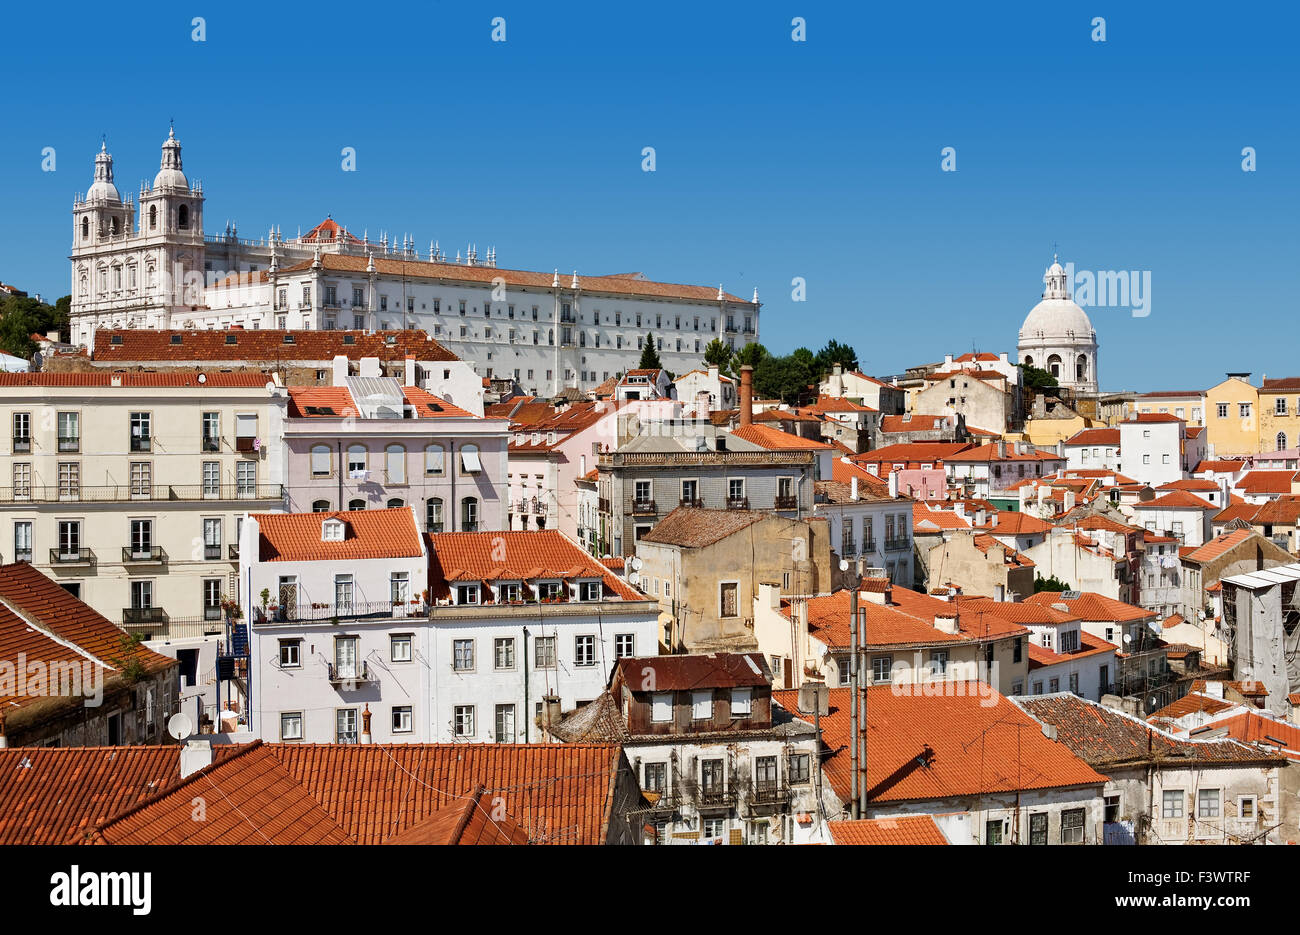 Alfama, old part of Lisbon - Stock Image